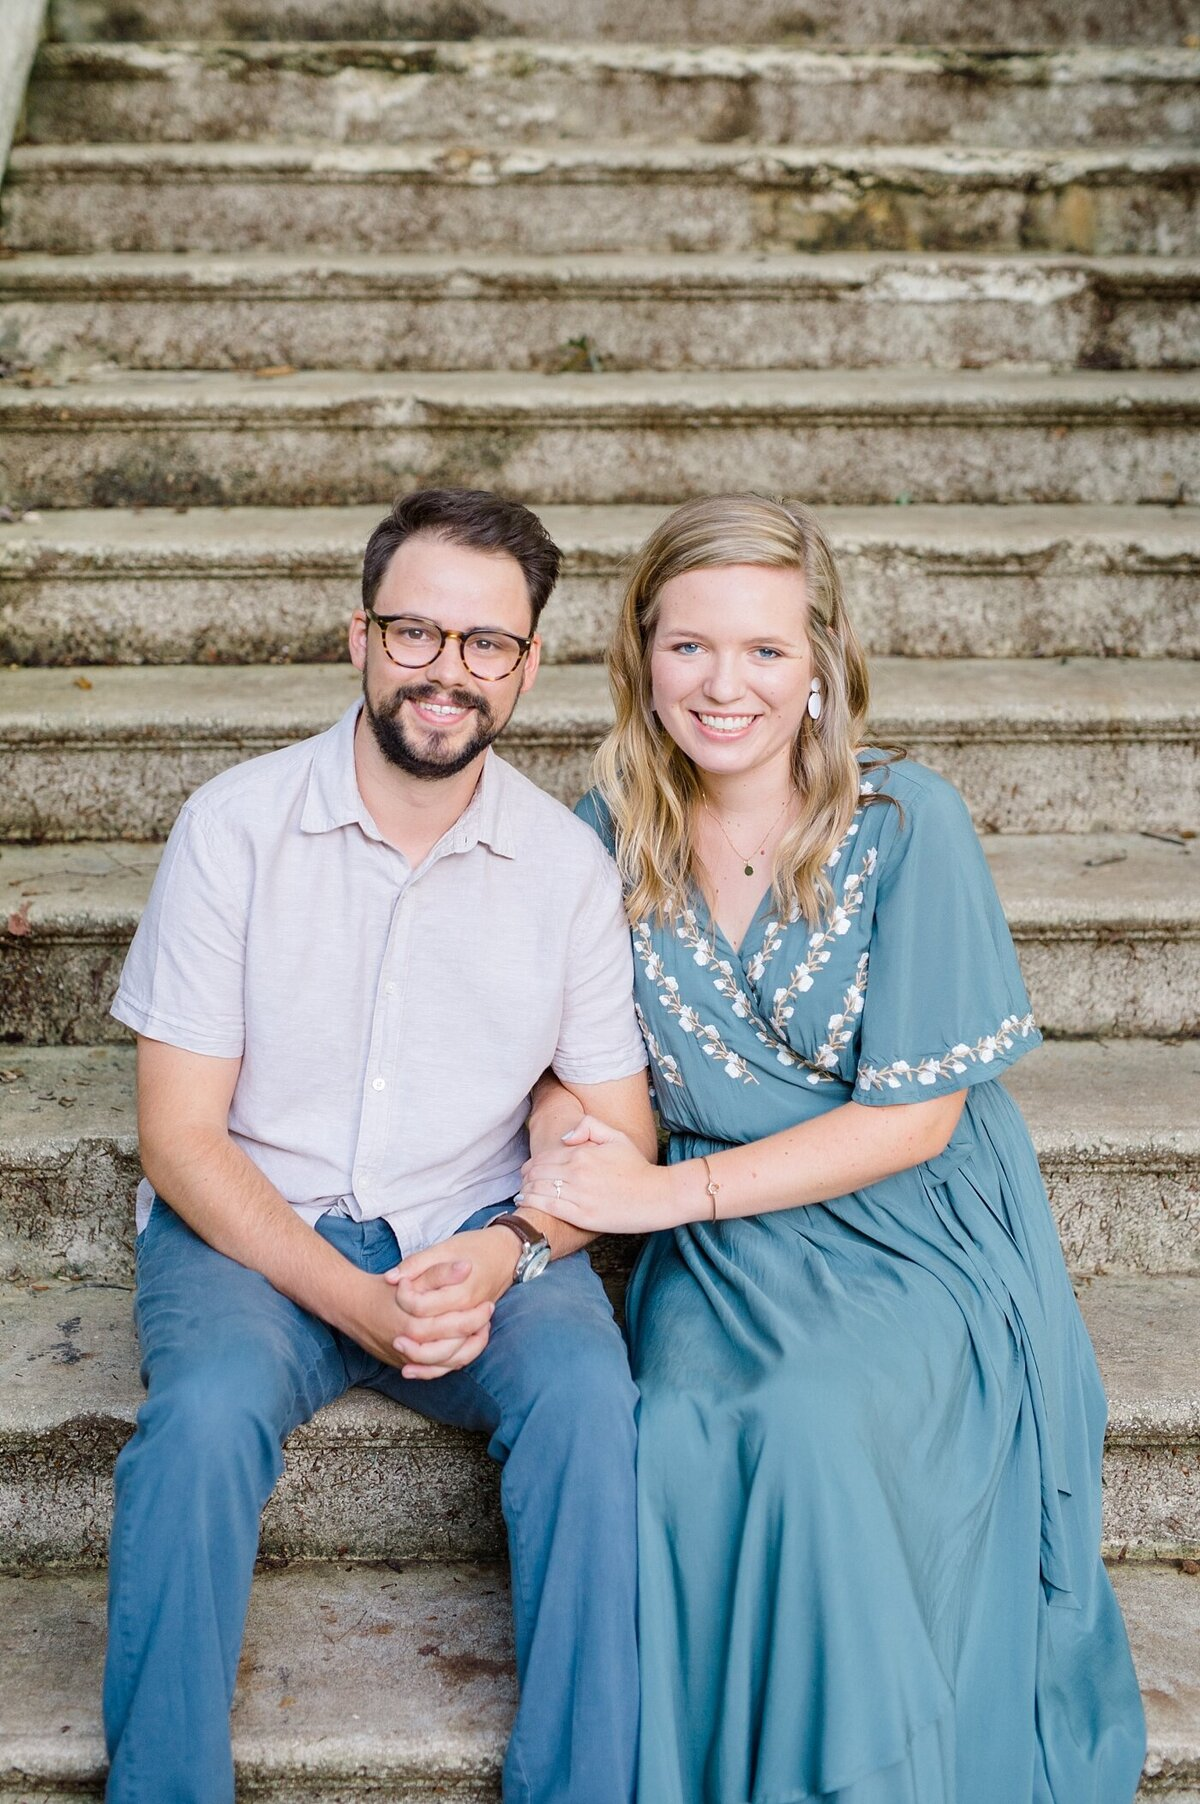 cator-woolford-gardens-engagement-wedding-photographer-laura-barnes-photo-shackelford-12